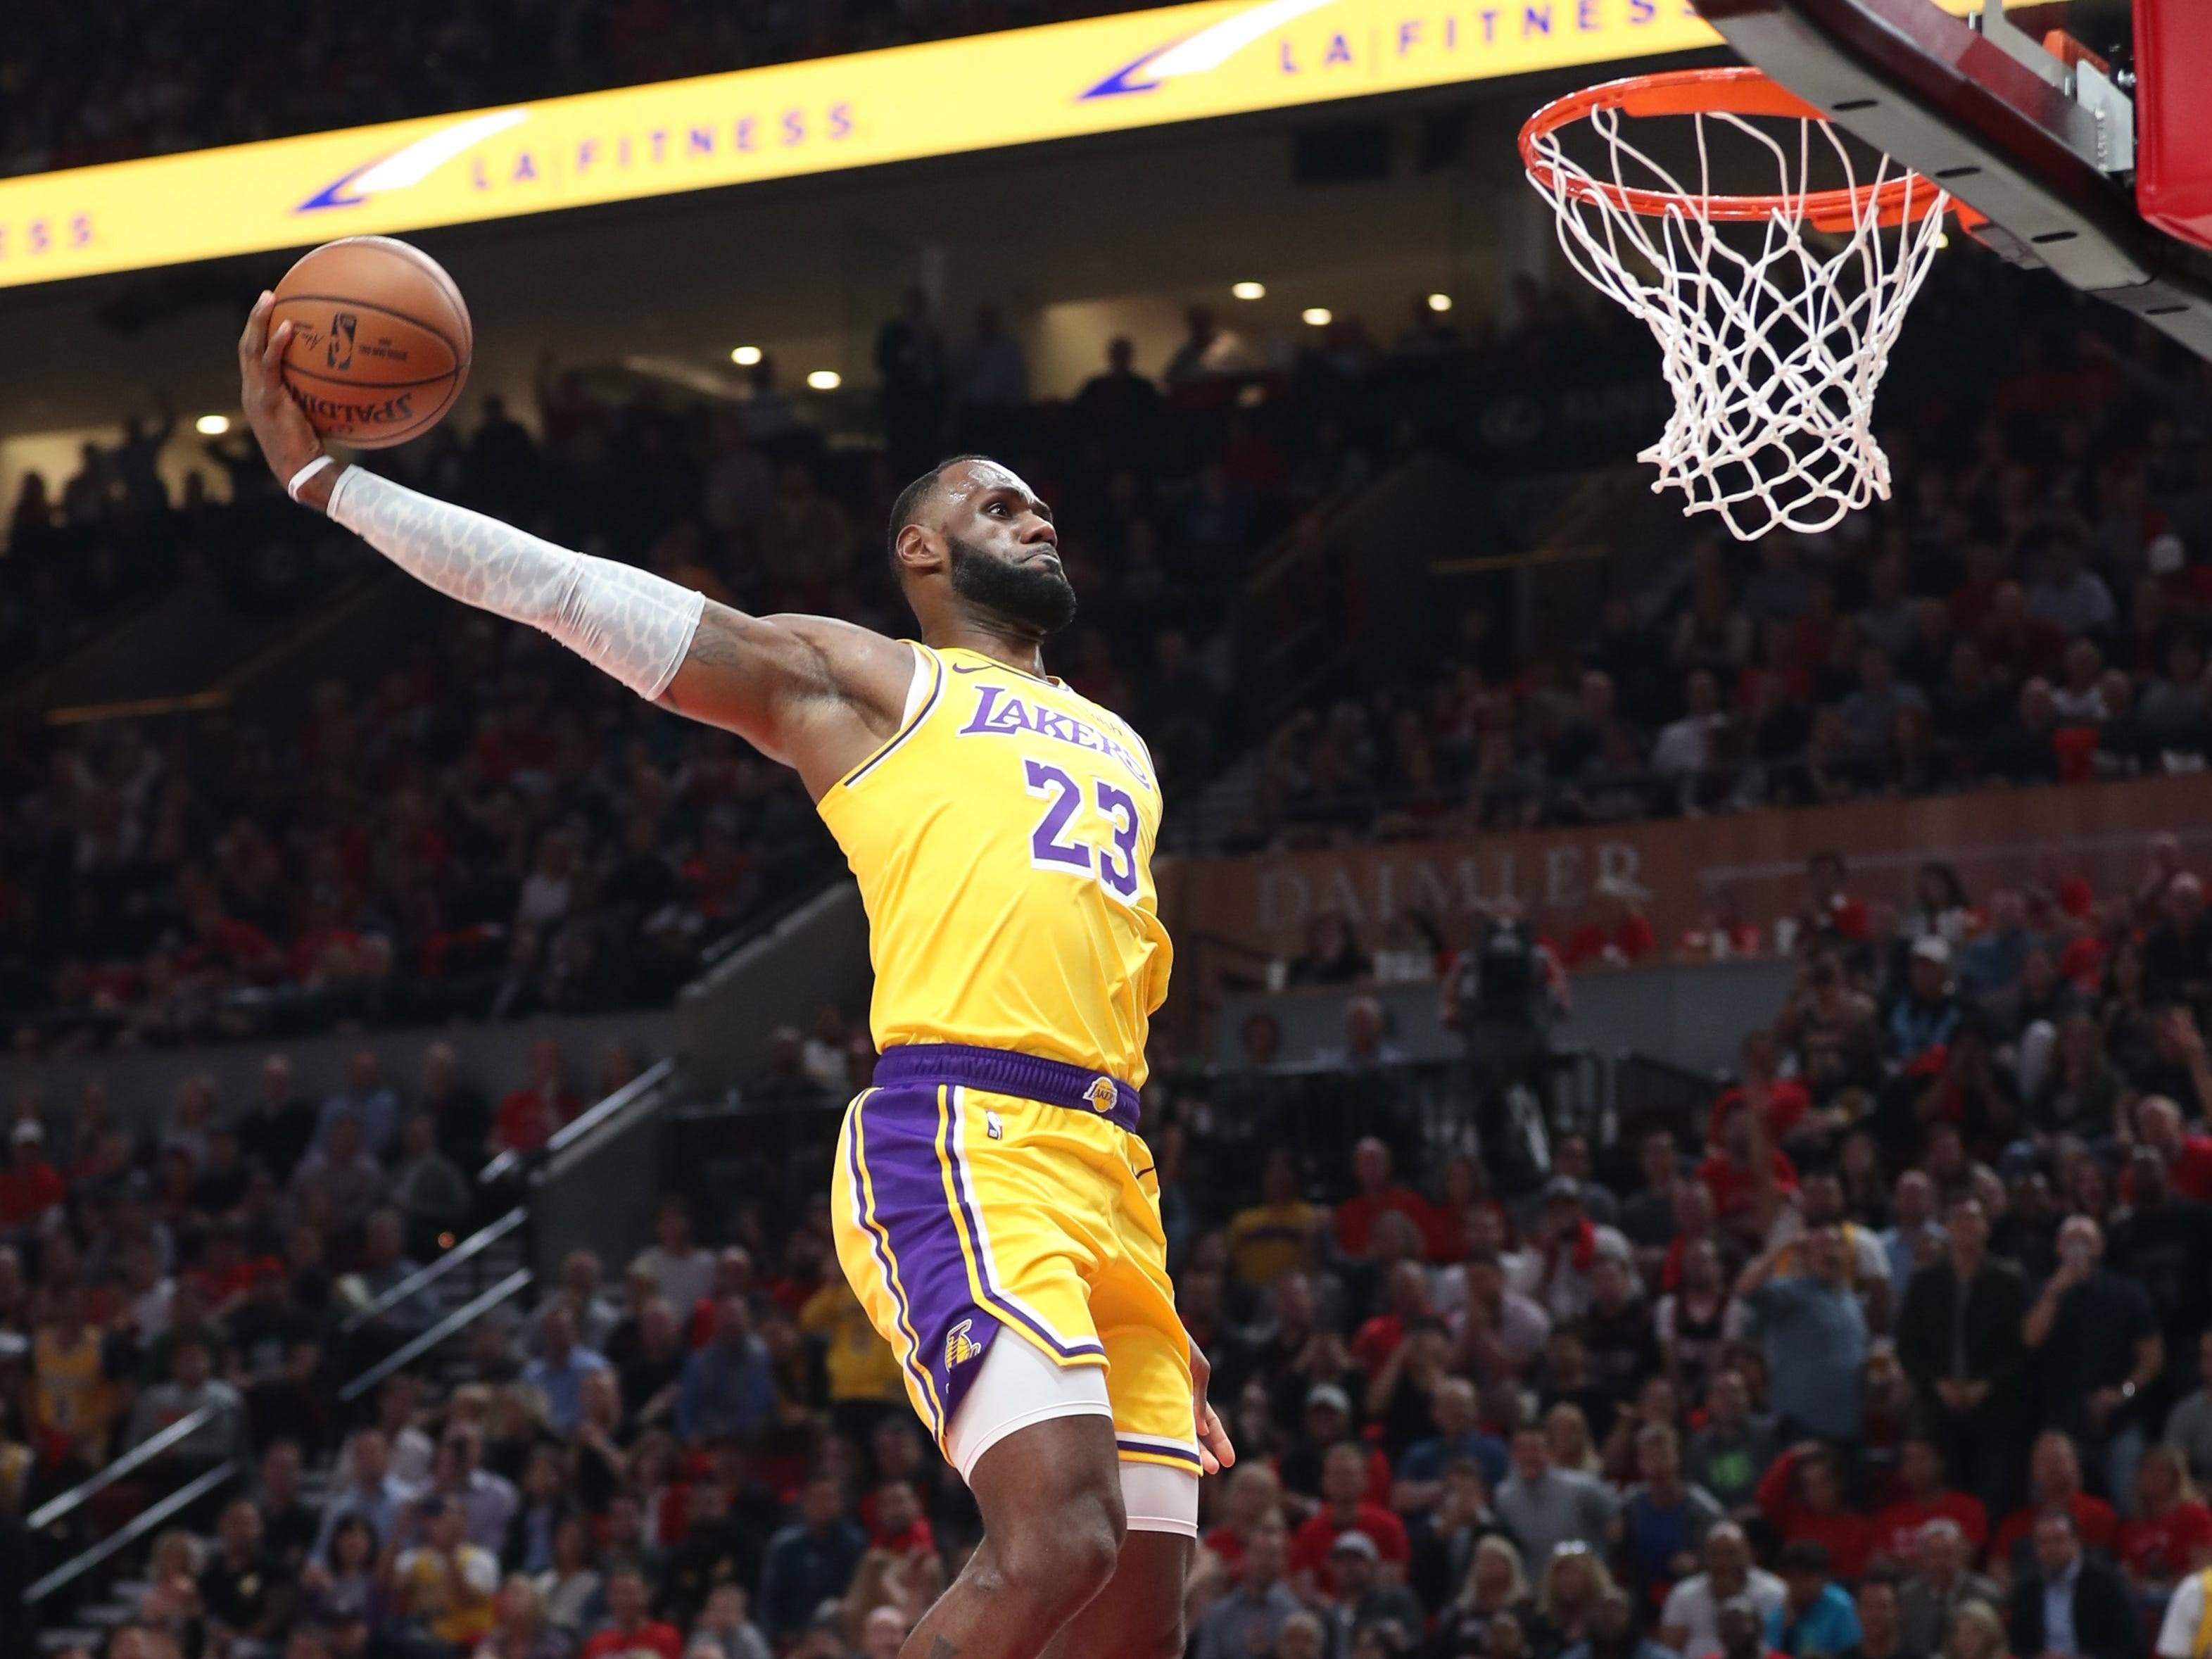 Oct. 18, 2018: James soars to the hoop to slam home his first bucket as a member of the Lakers against the Blazers in Portland.